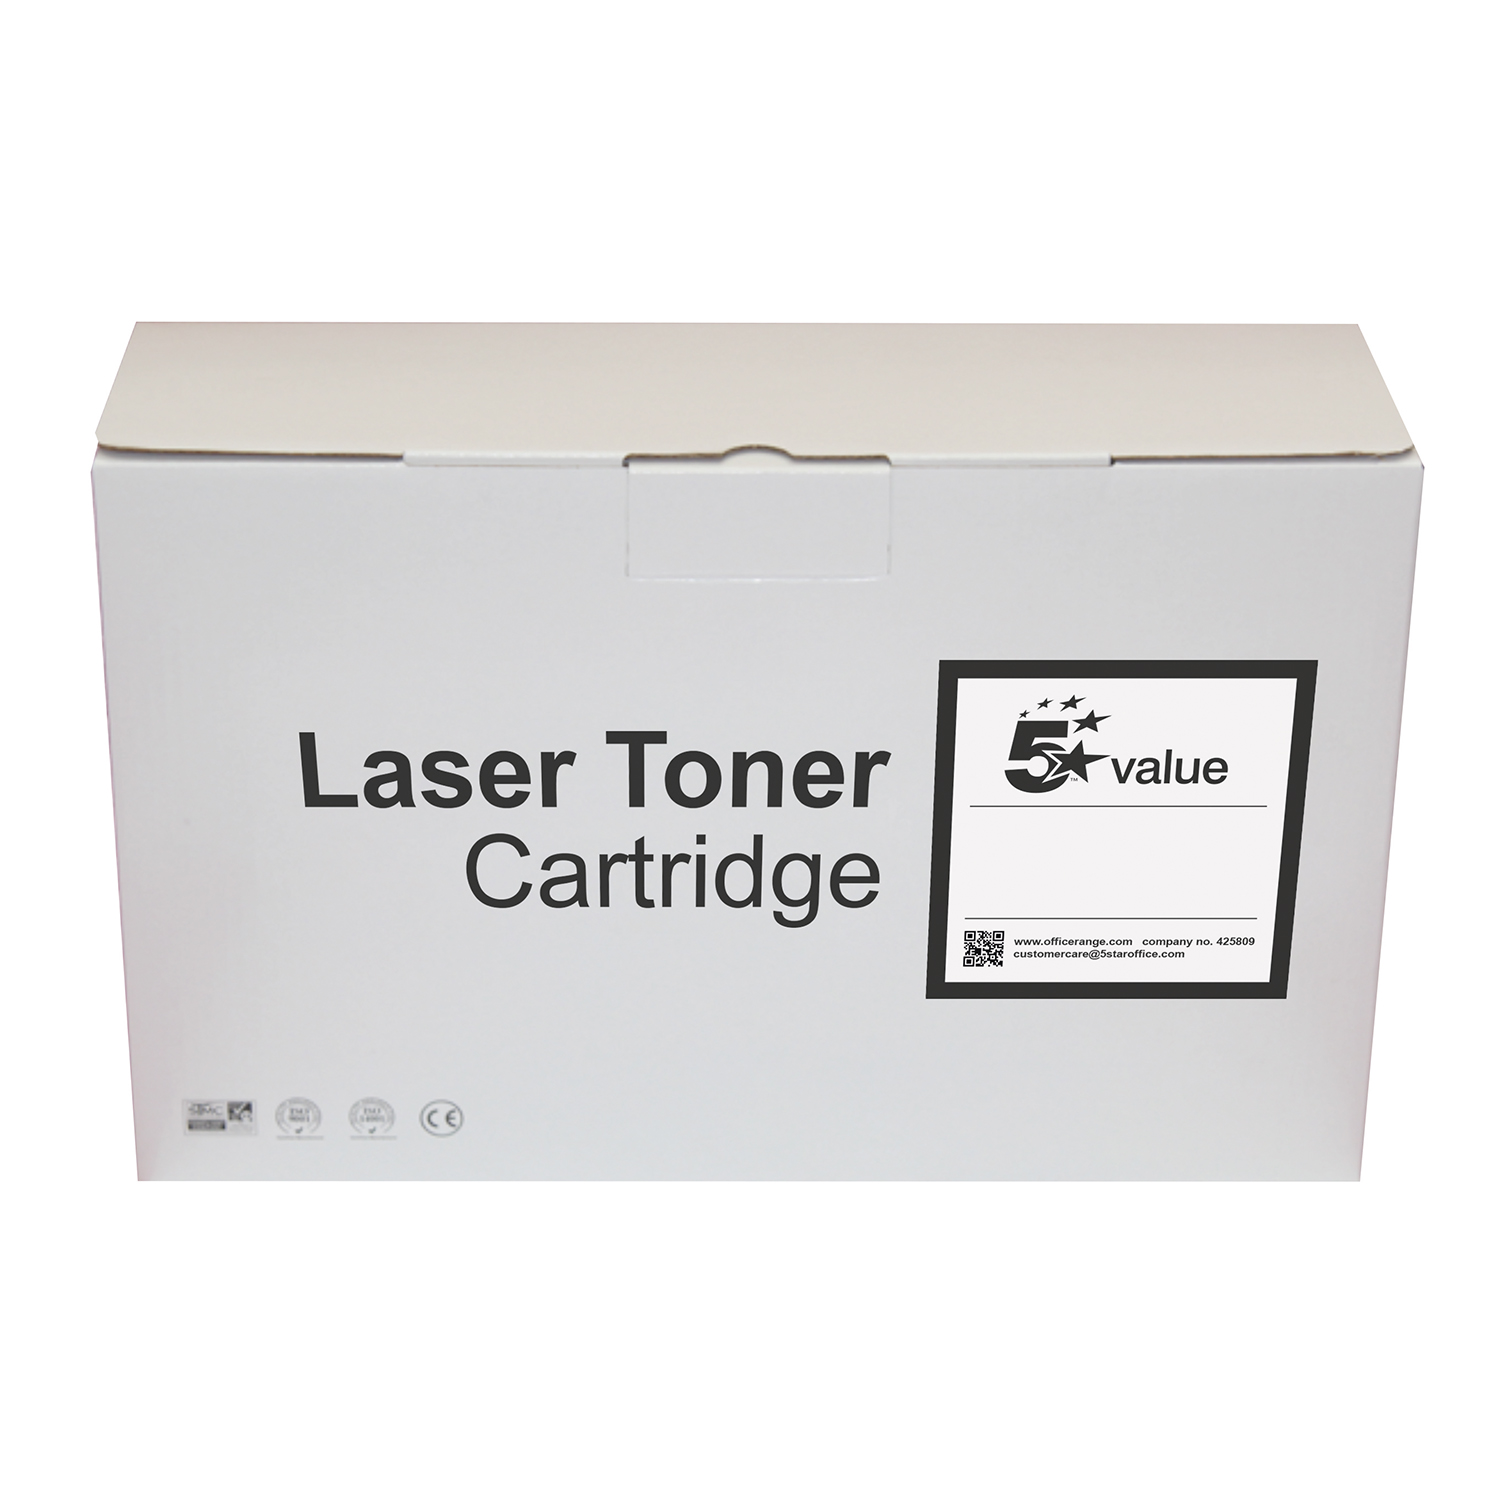 Laser Toner Cartridges 5 Star Value HP 312A Toner Cartridge Yellow CF382A